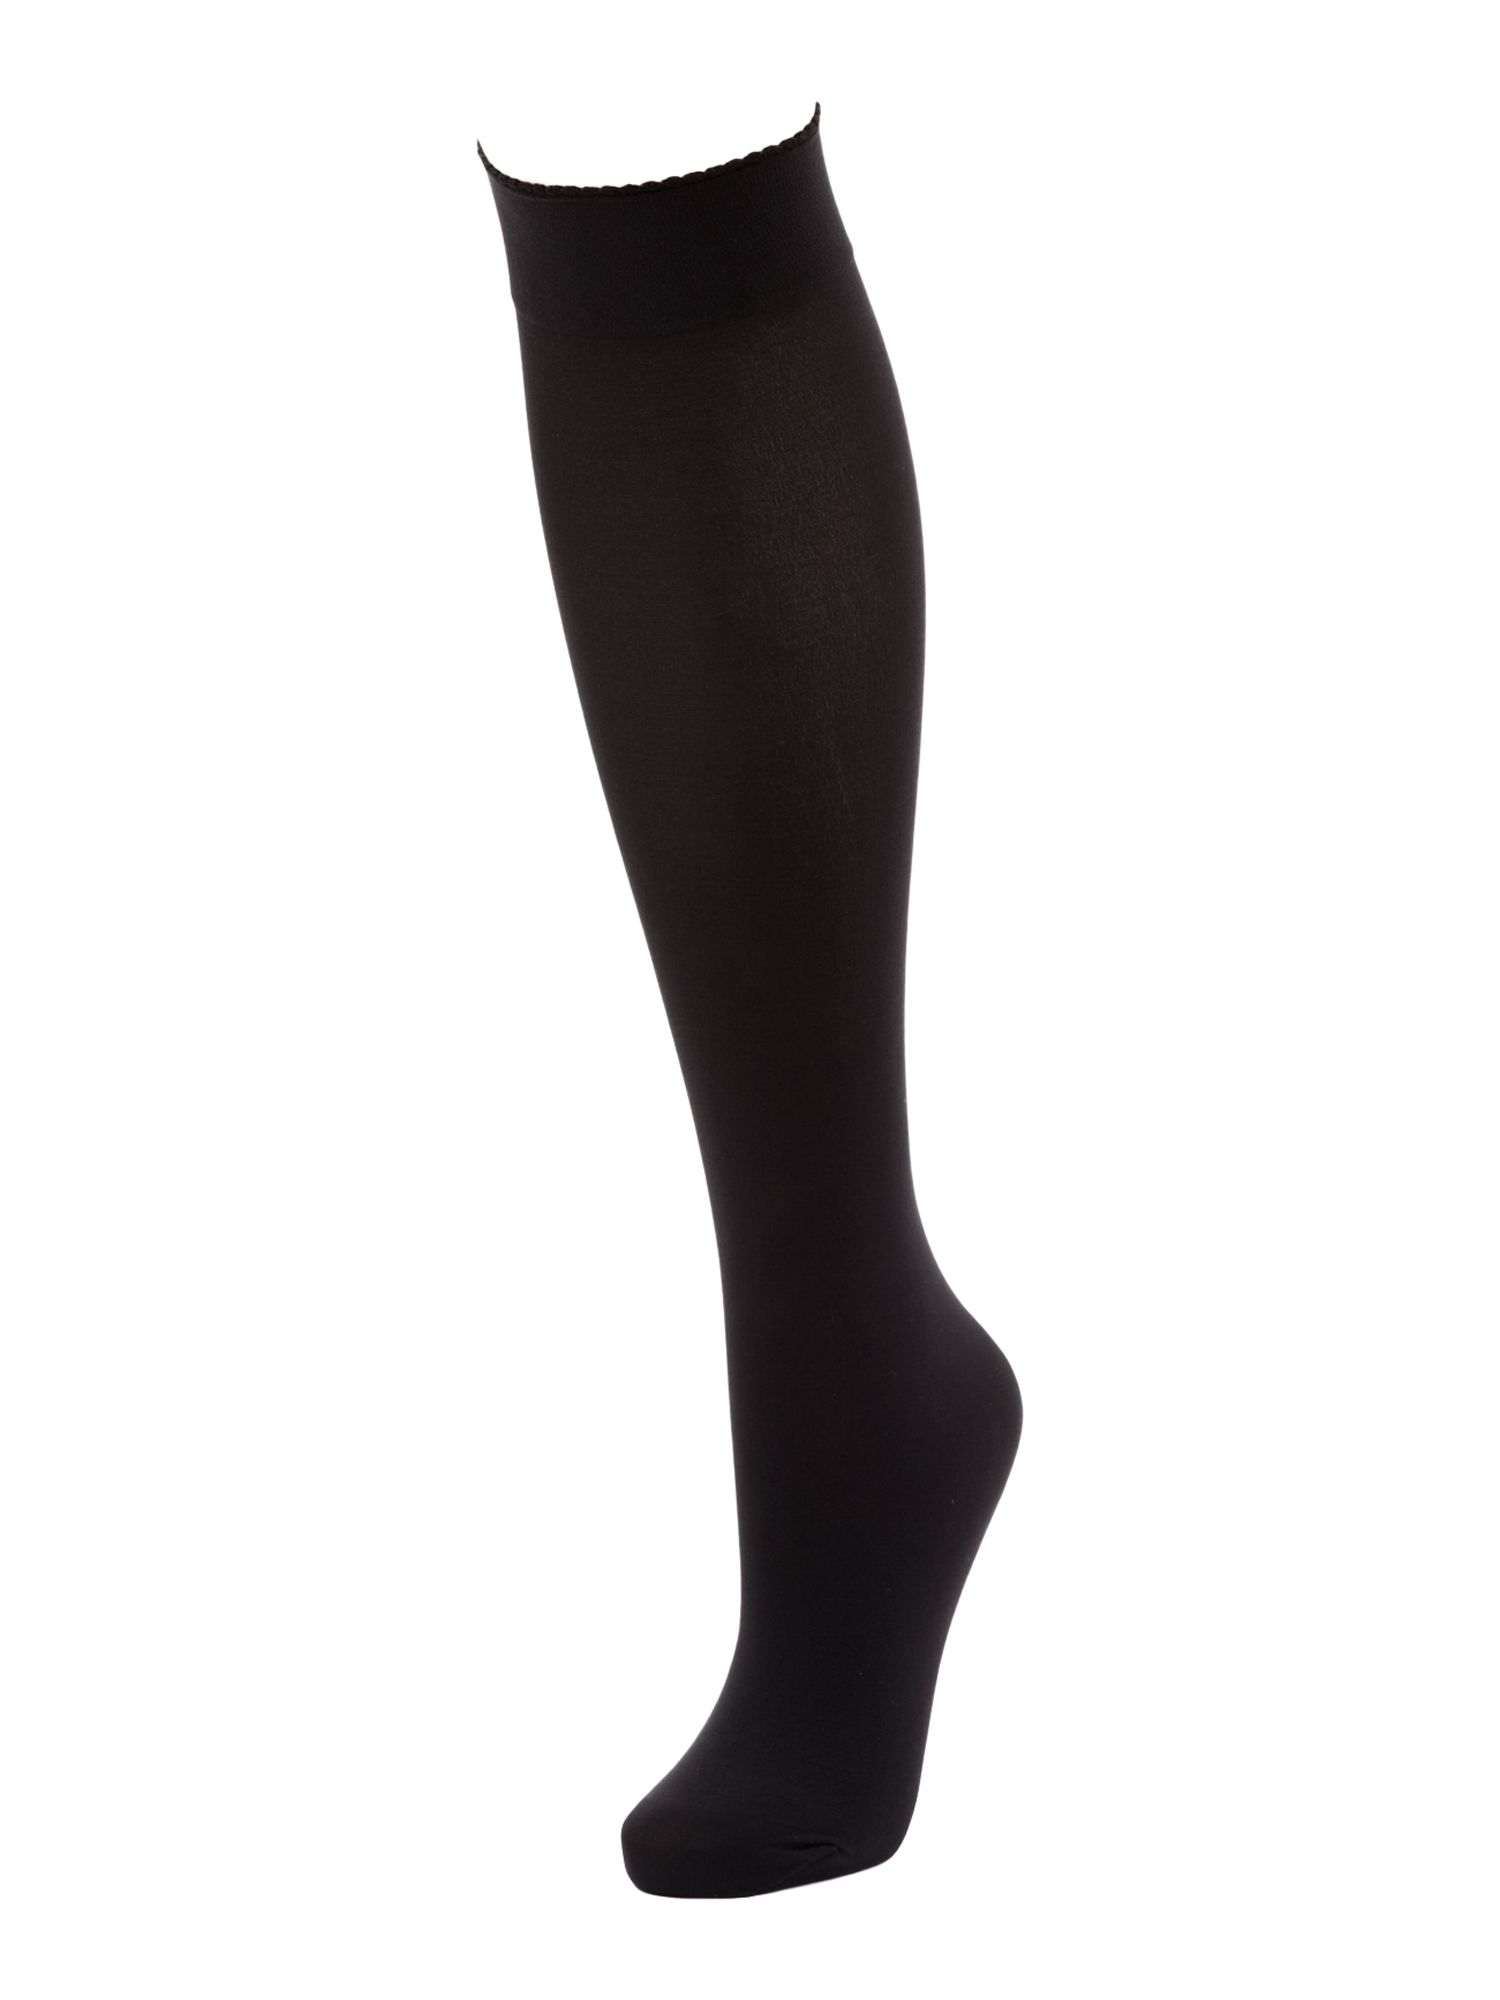 Velvet 50 denier knee highs